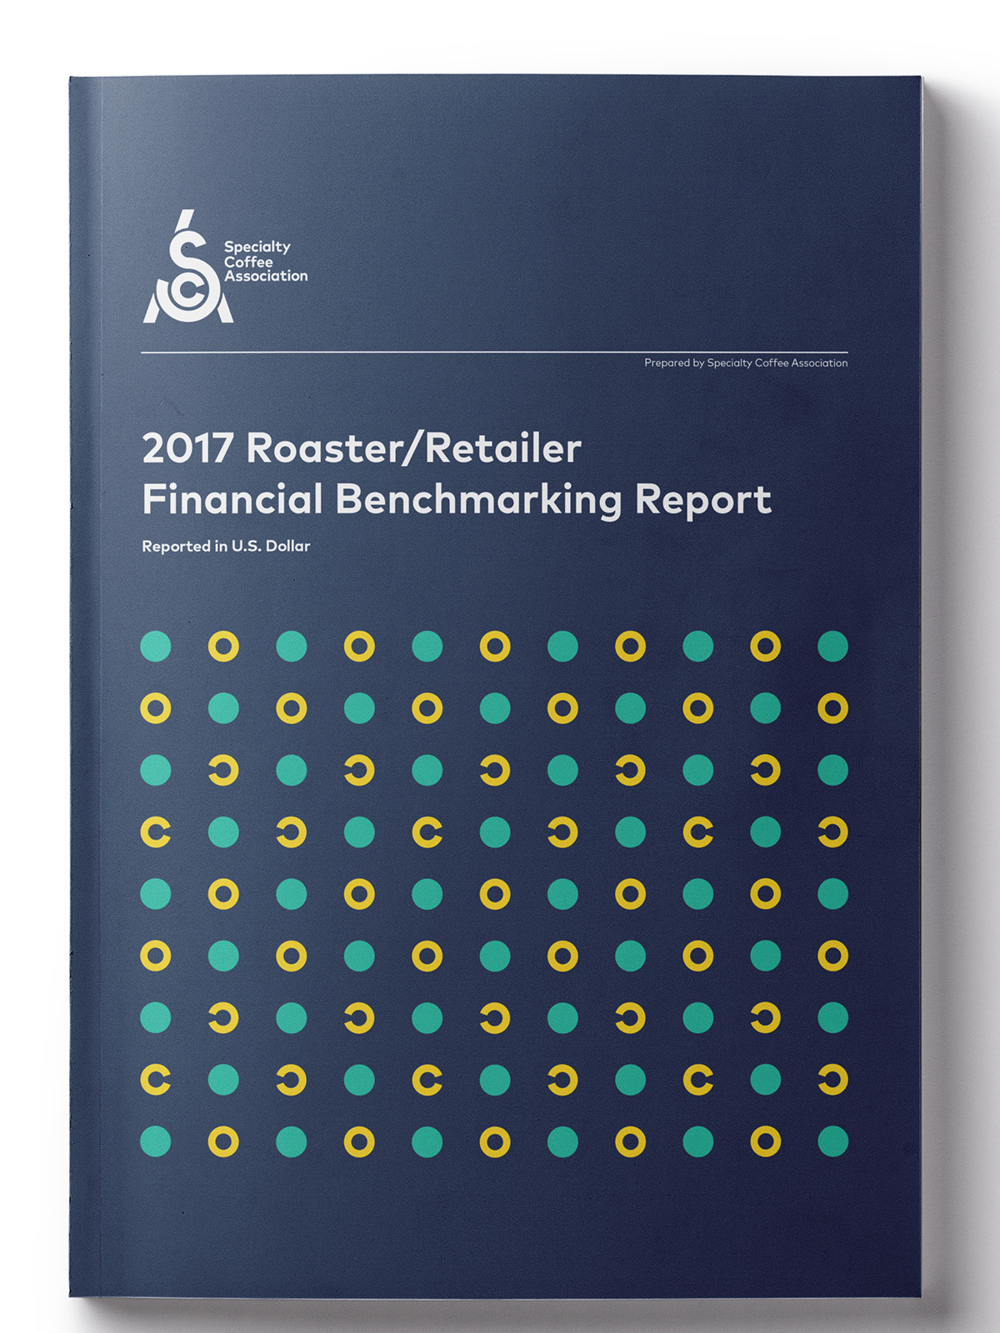 2017 Roaster/Retailer Financial Benchmarking Report   The 2017 Roaster/Retailer Benchmarking Study Results Access presents results of a business operations survey that was sent to coffee roasters and retailers in April of 2017. This platform is designed to be a dynamic benchmarking tool to assess roasters and retailers' financial performance (based on 2016 results) relative to other businesses in the industry. The industry benchmarks reflect key operating data including financial ratios, sales mix data, and company profile information based on the results of the survey.   Buy Now